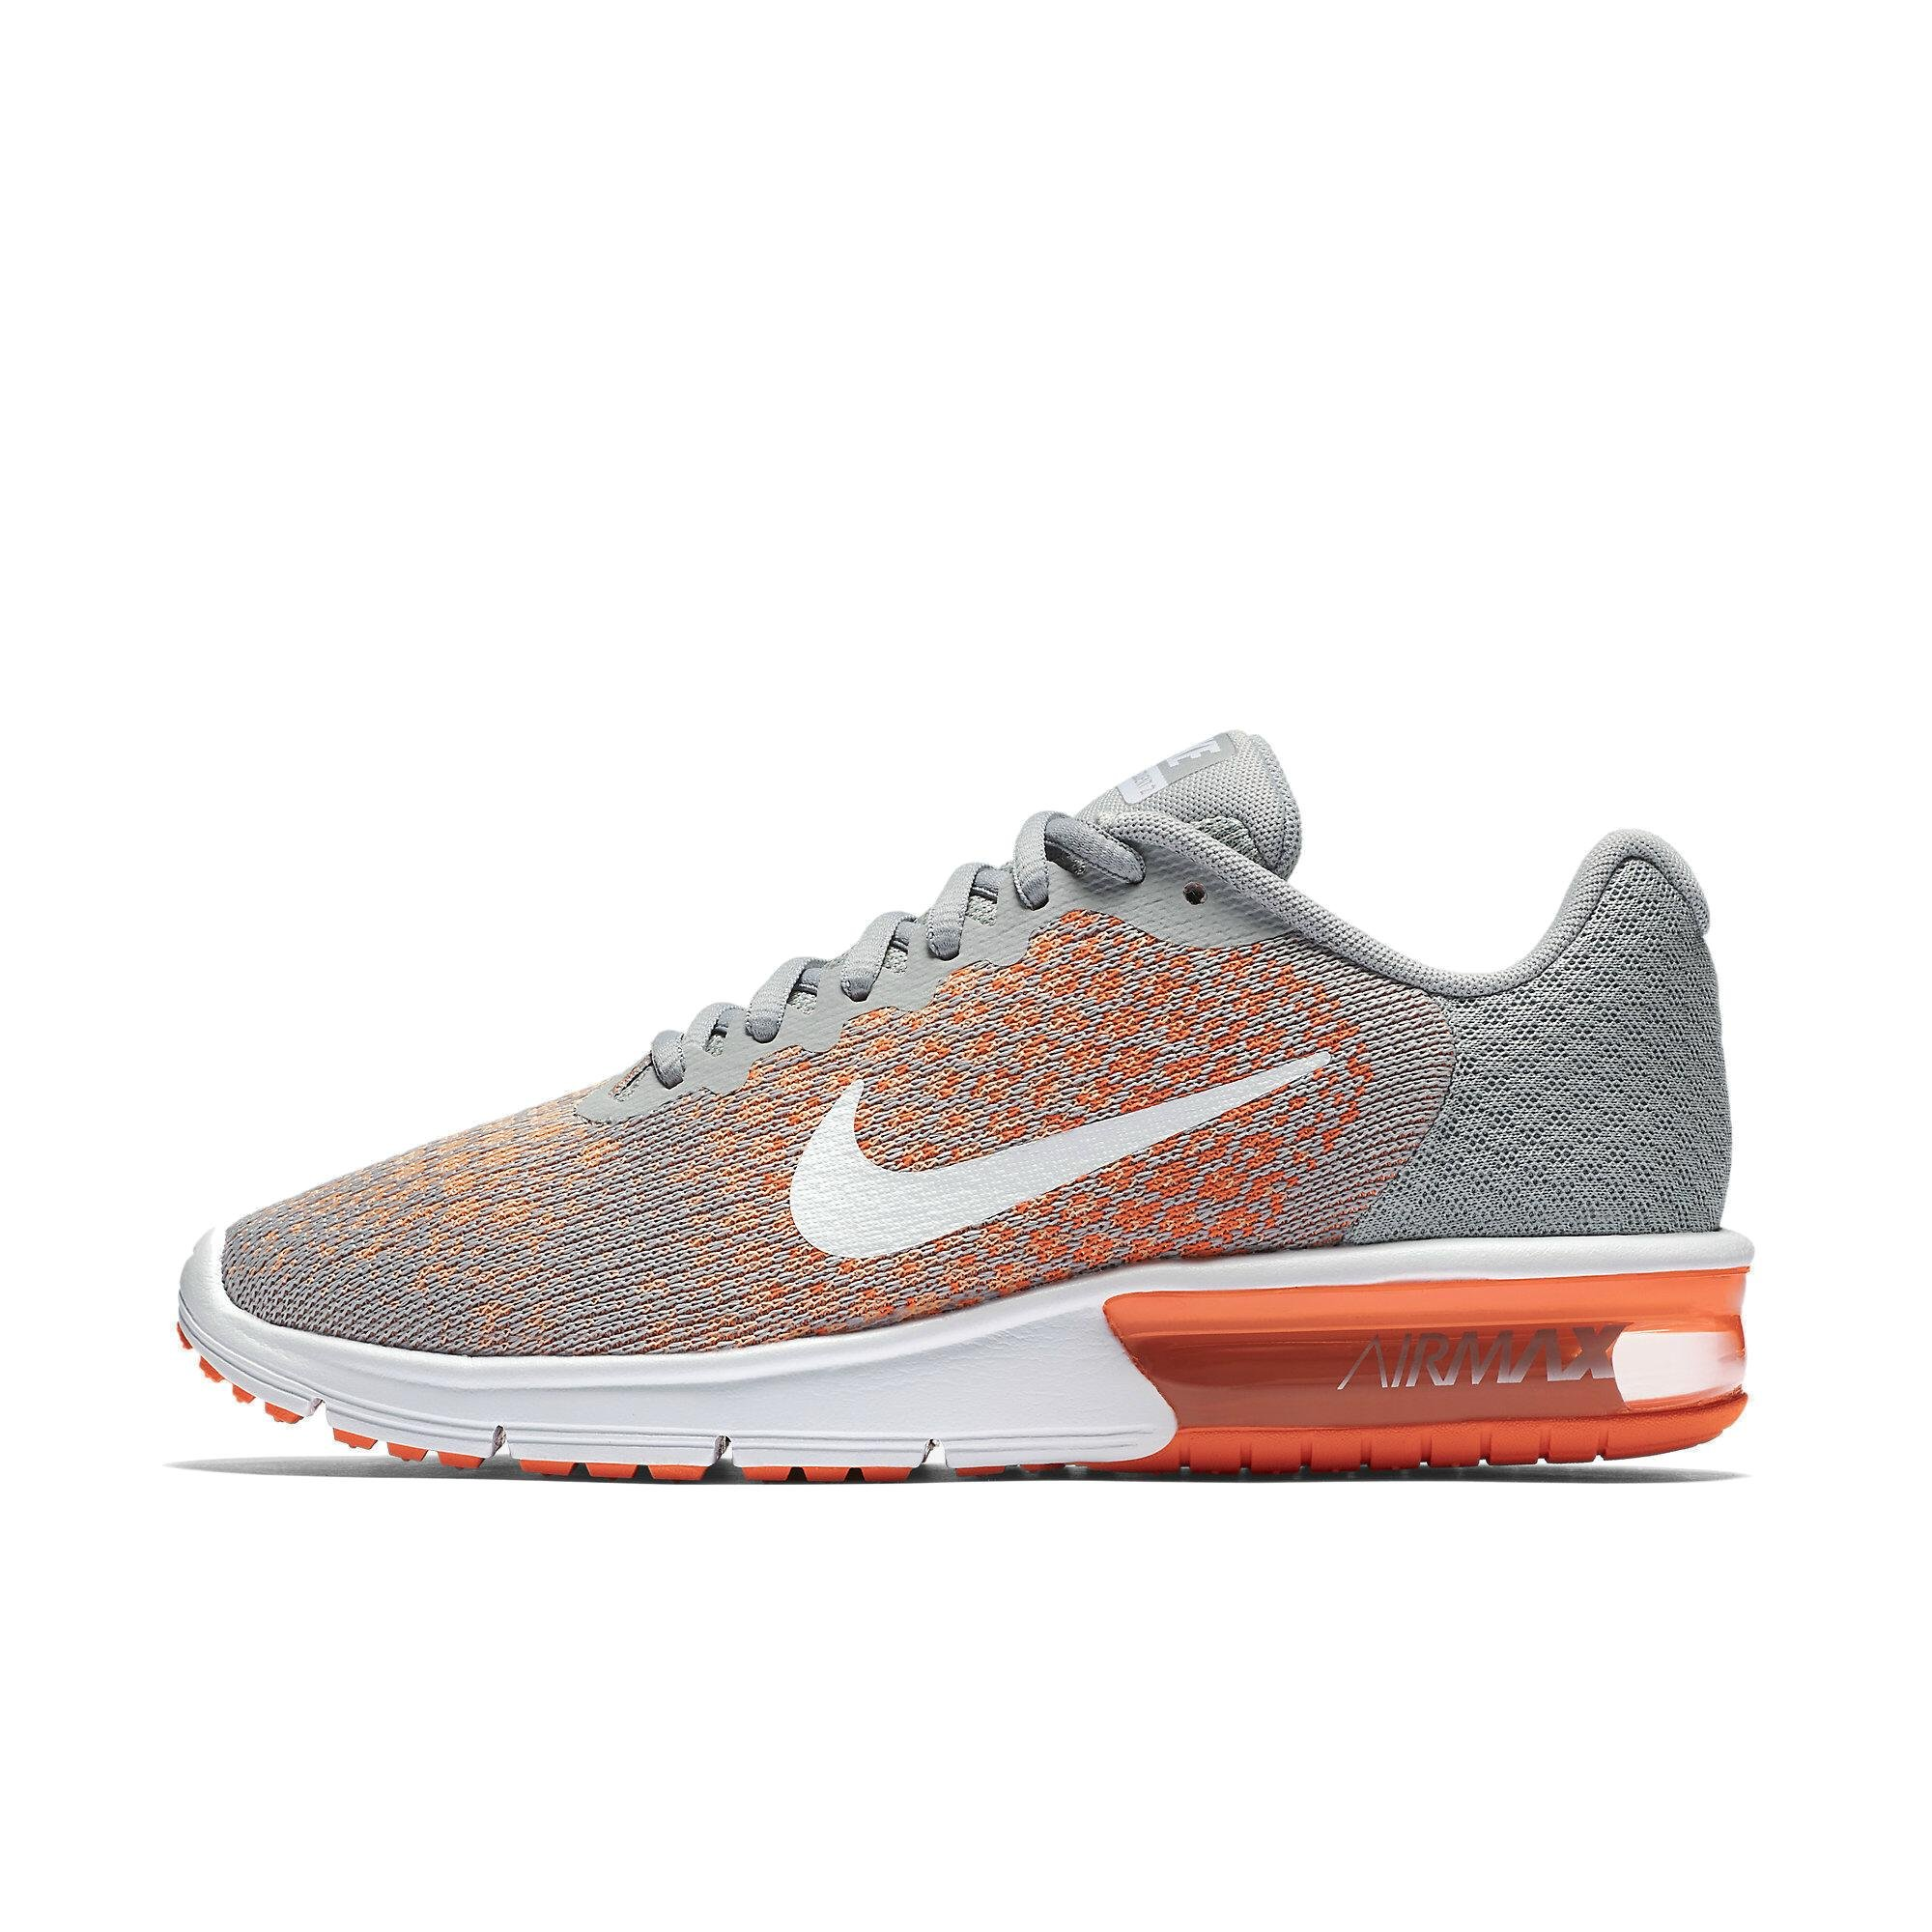 NIKE Air Max Sequent 2 Womens Style : 852465-005 Size : 8 B(M) US